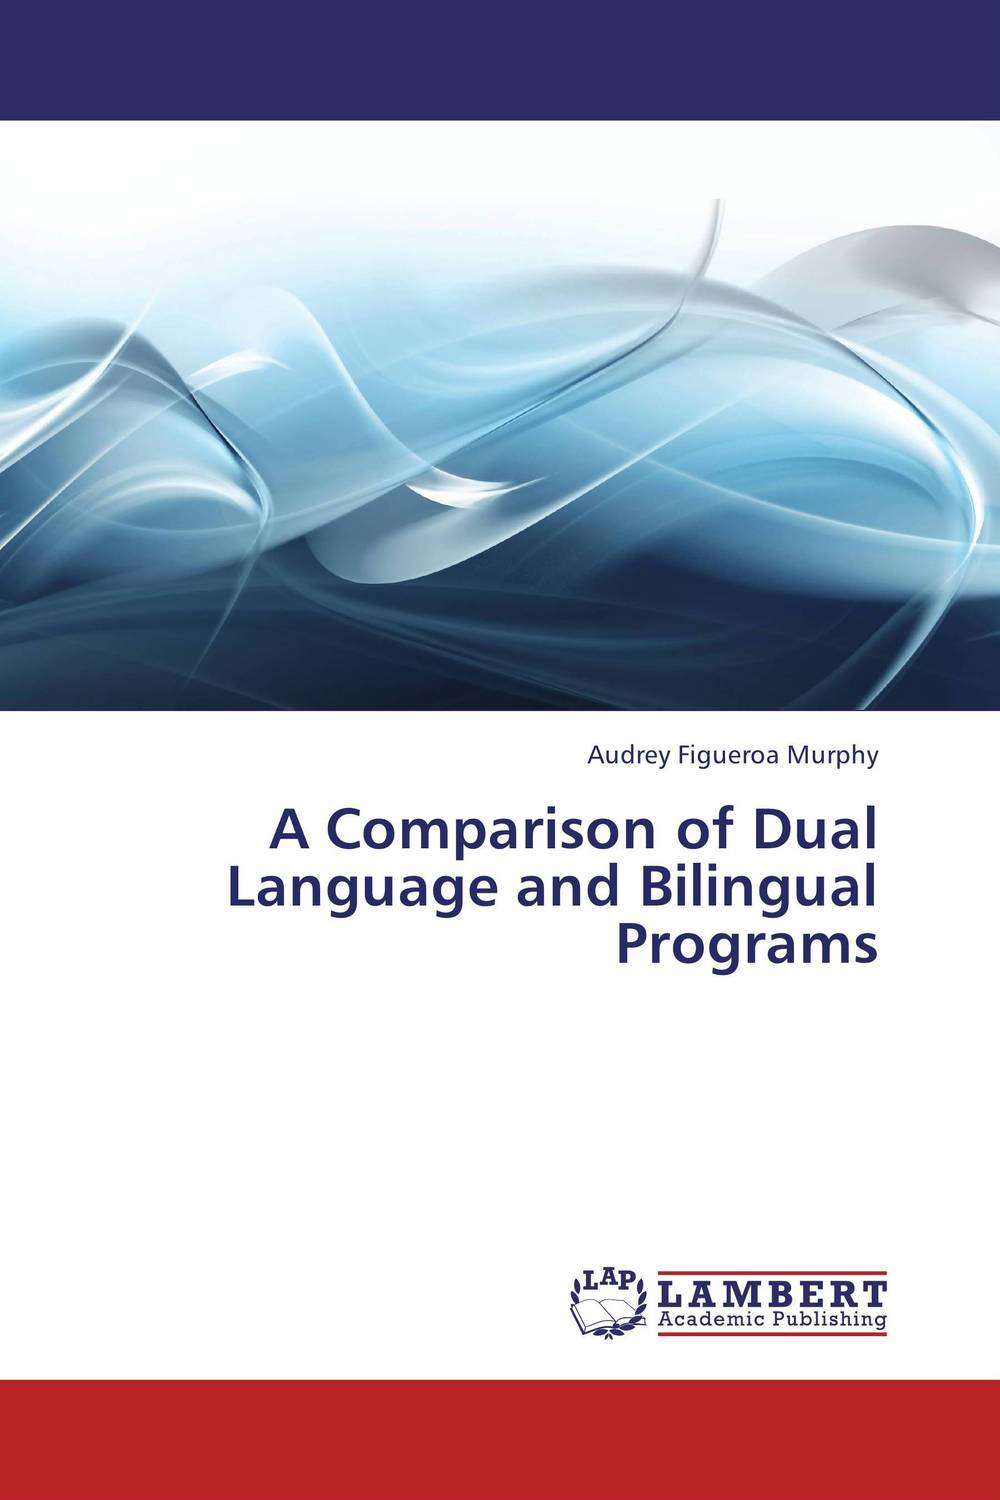 A Comparison of Dual Language and Bilingual Programs zoltan dornyei the psychology of second language acquisition